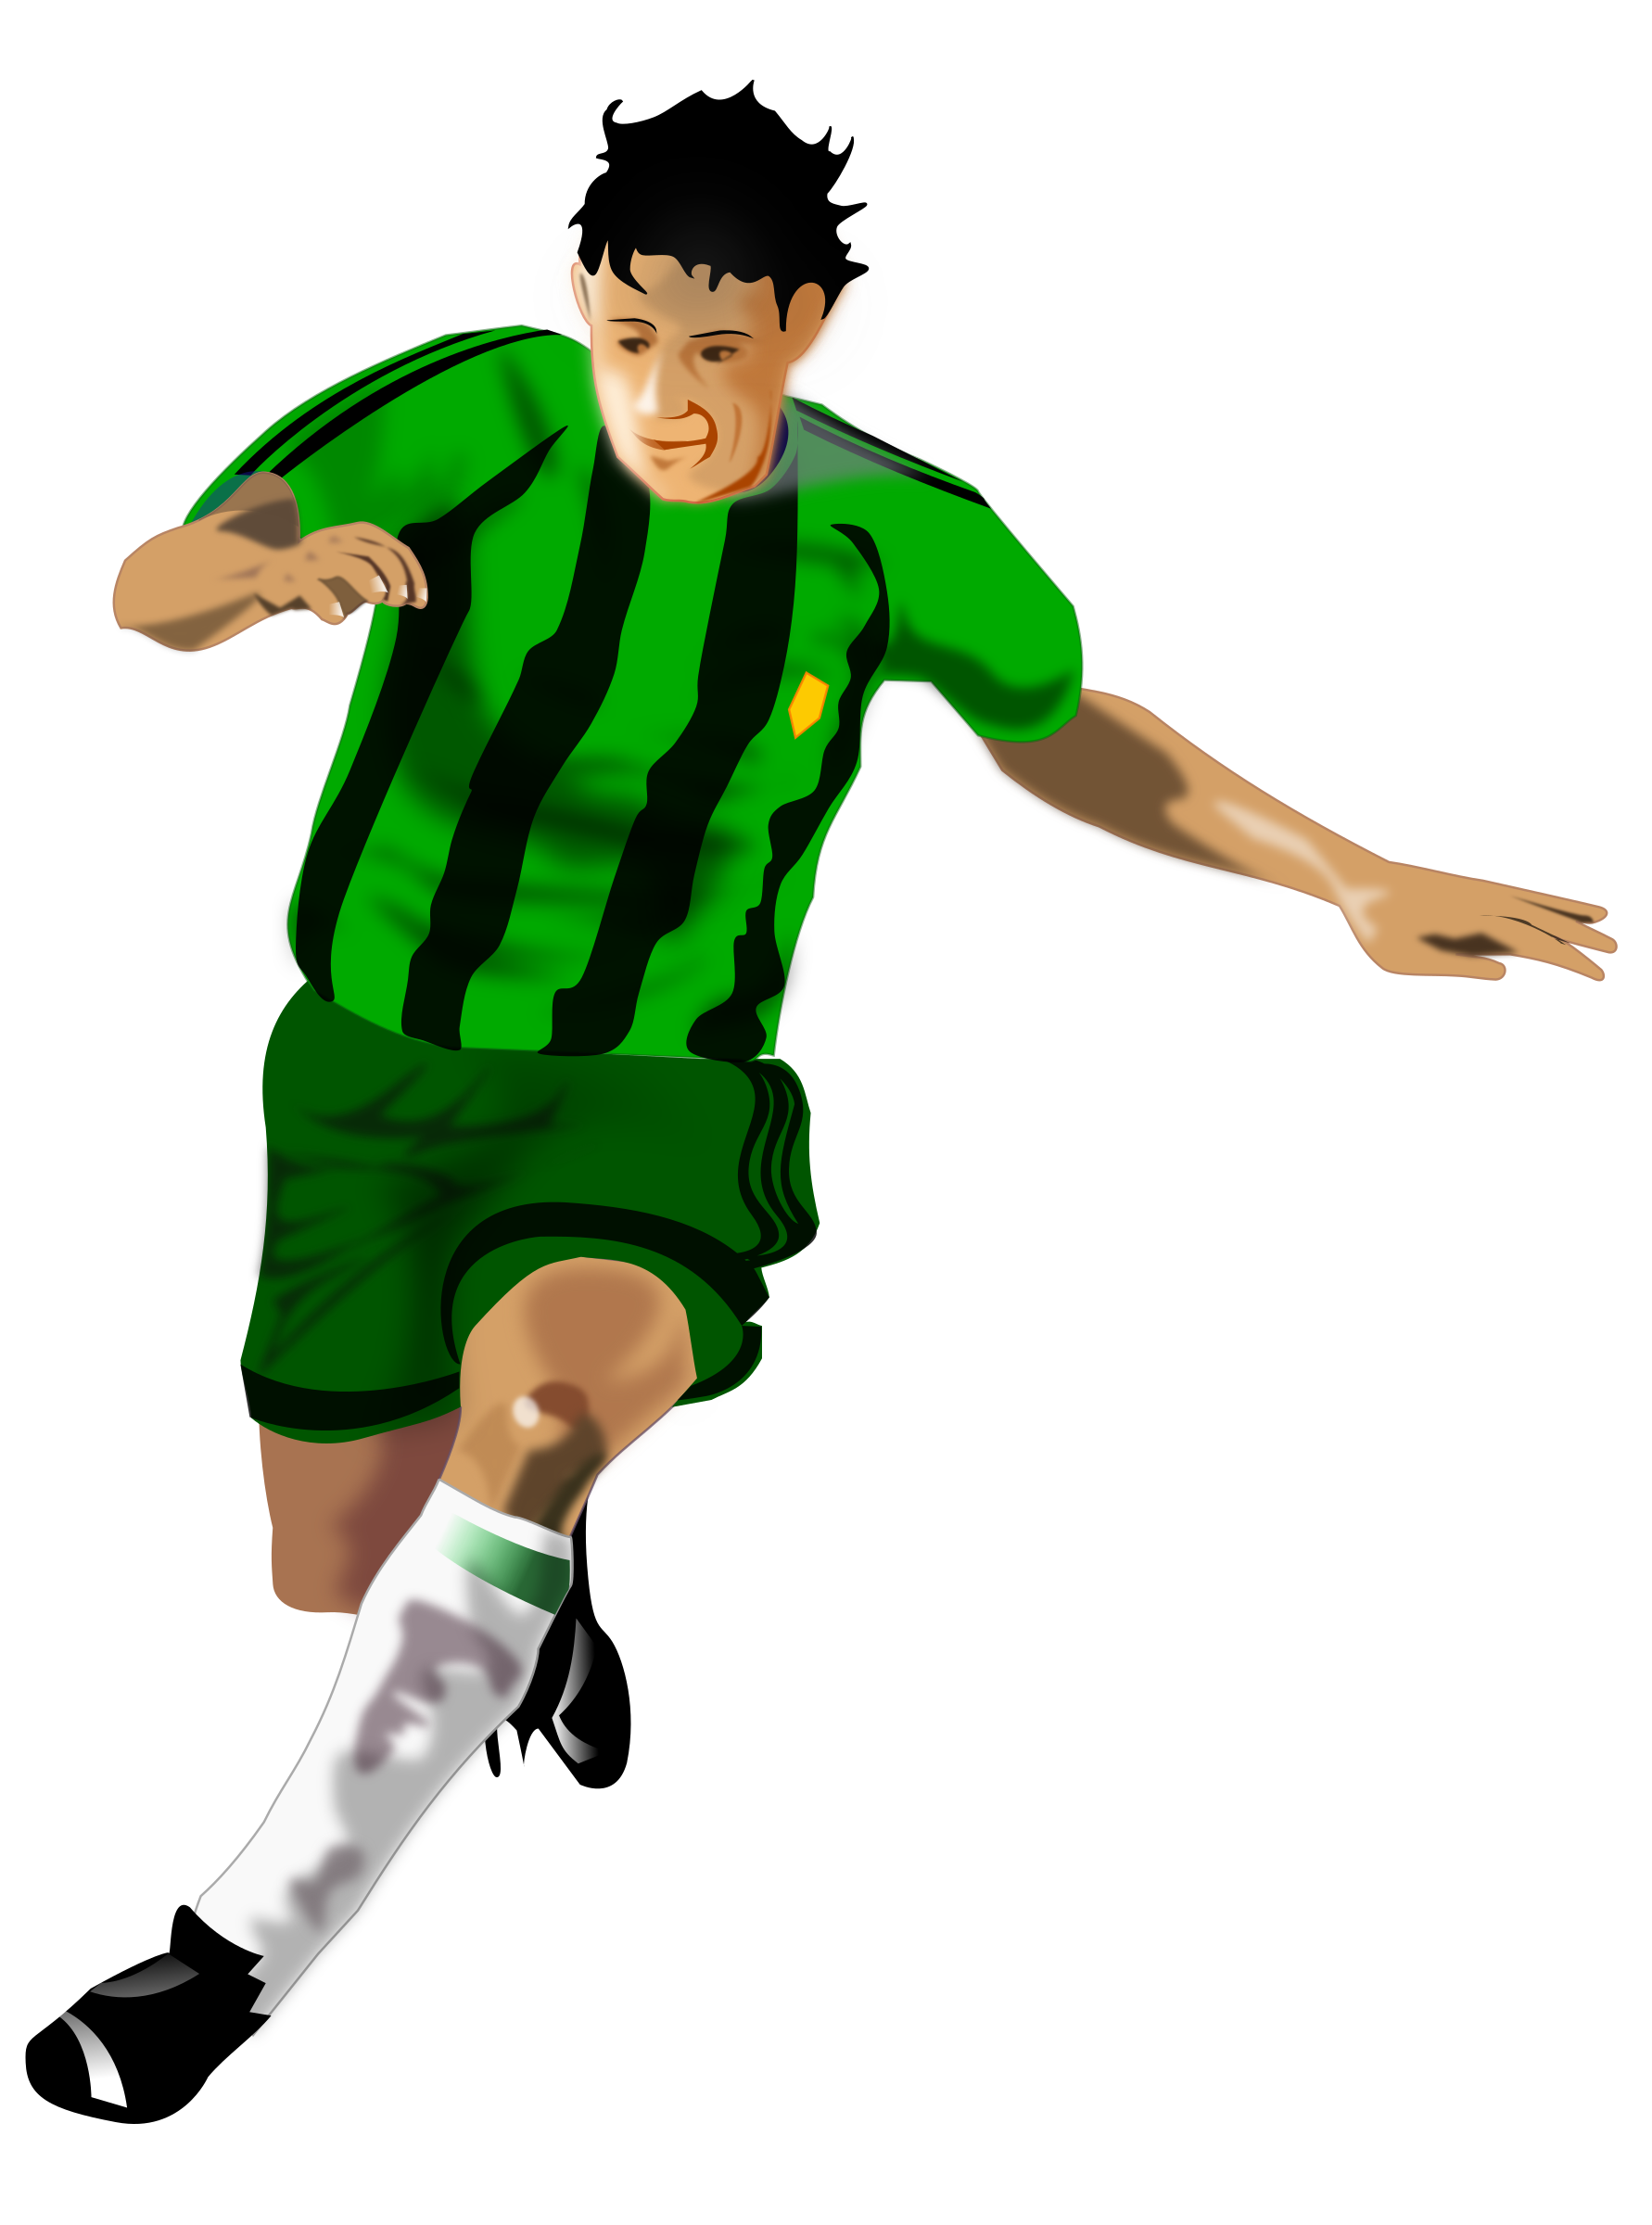 Soccer Player (Green/Black) by Alessio